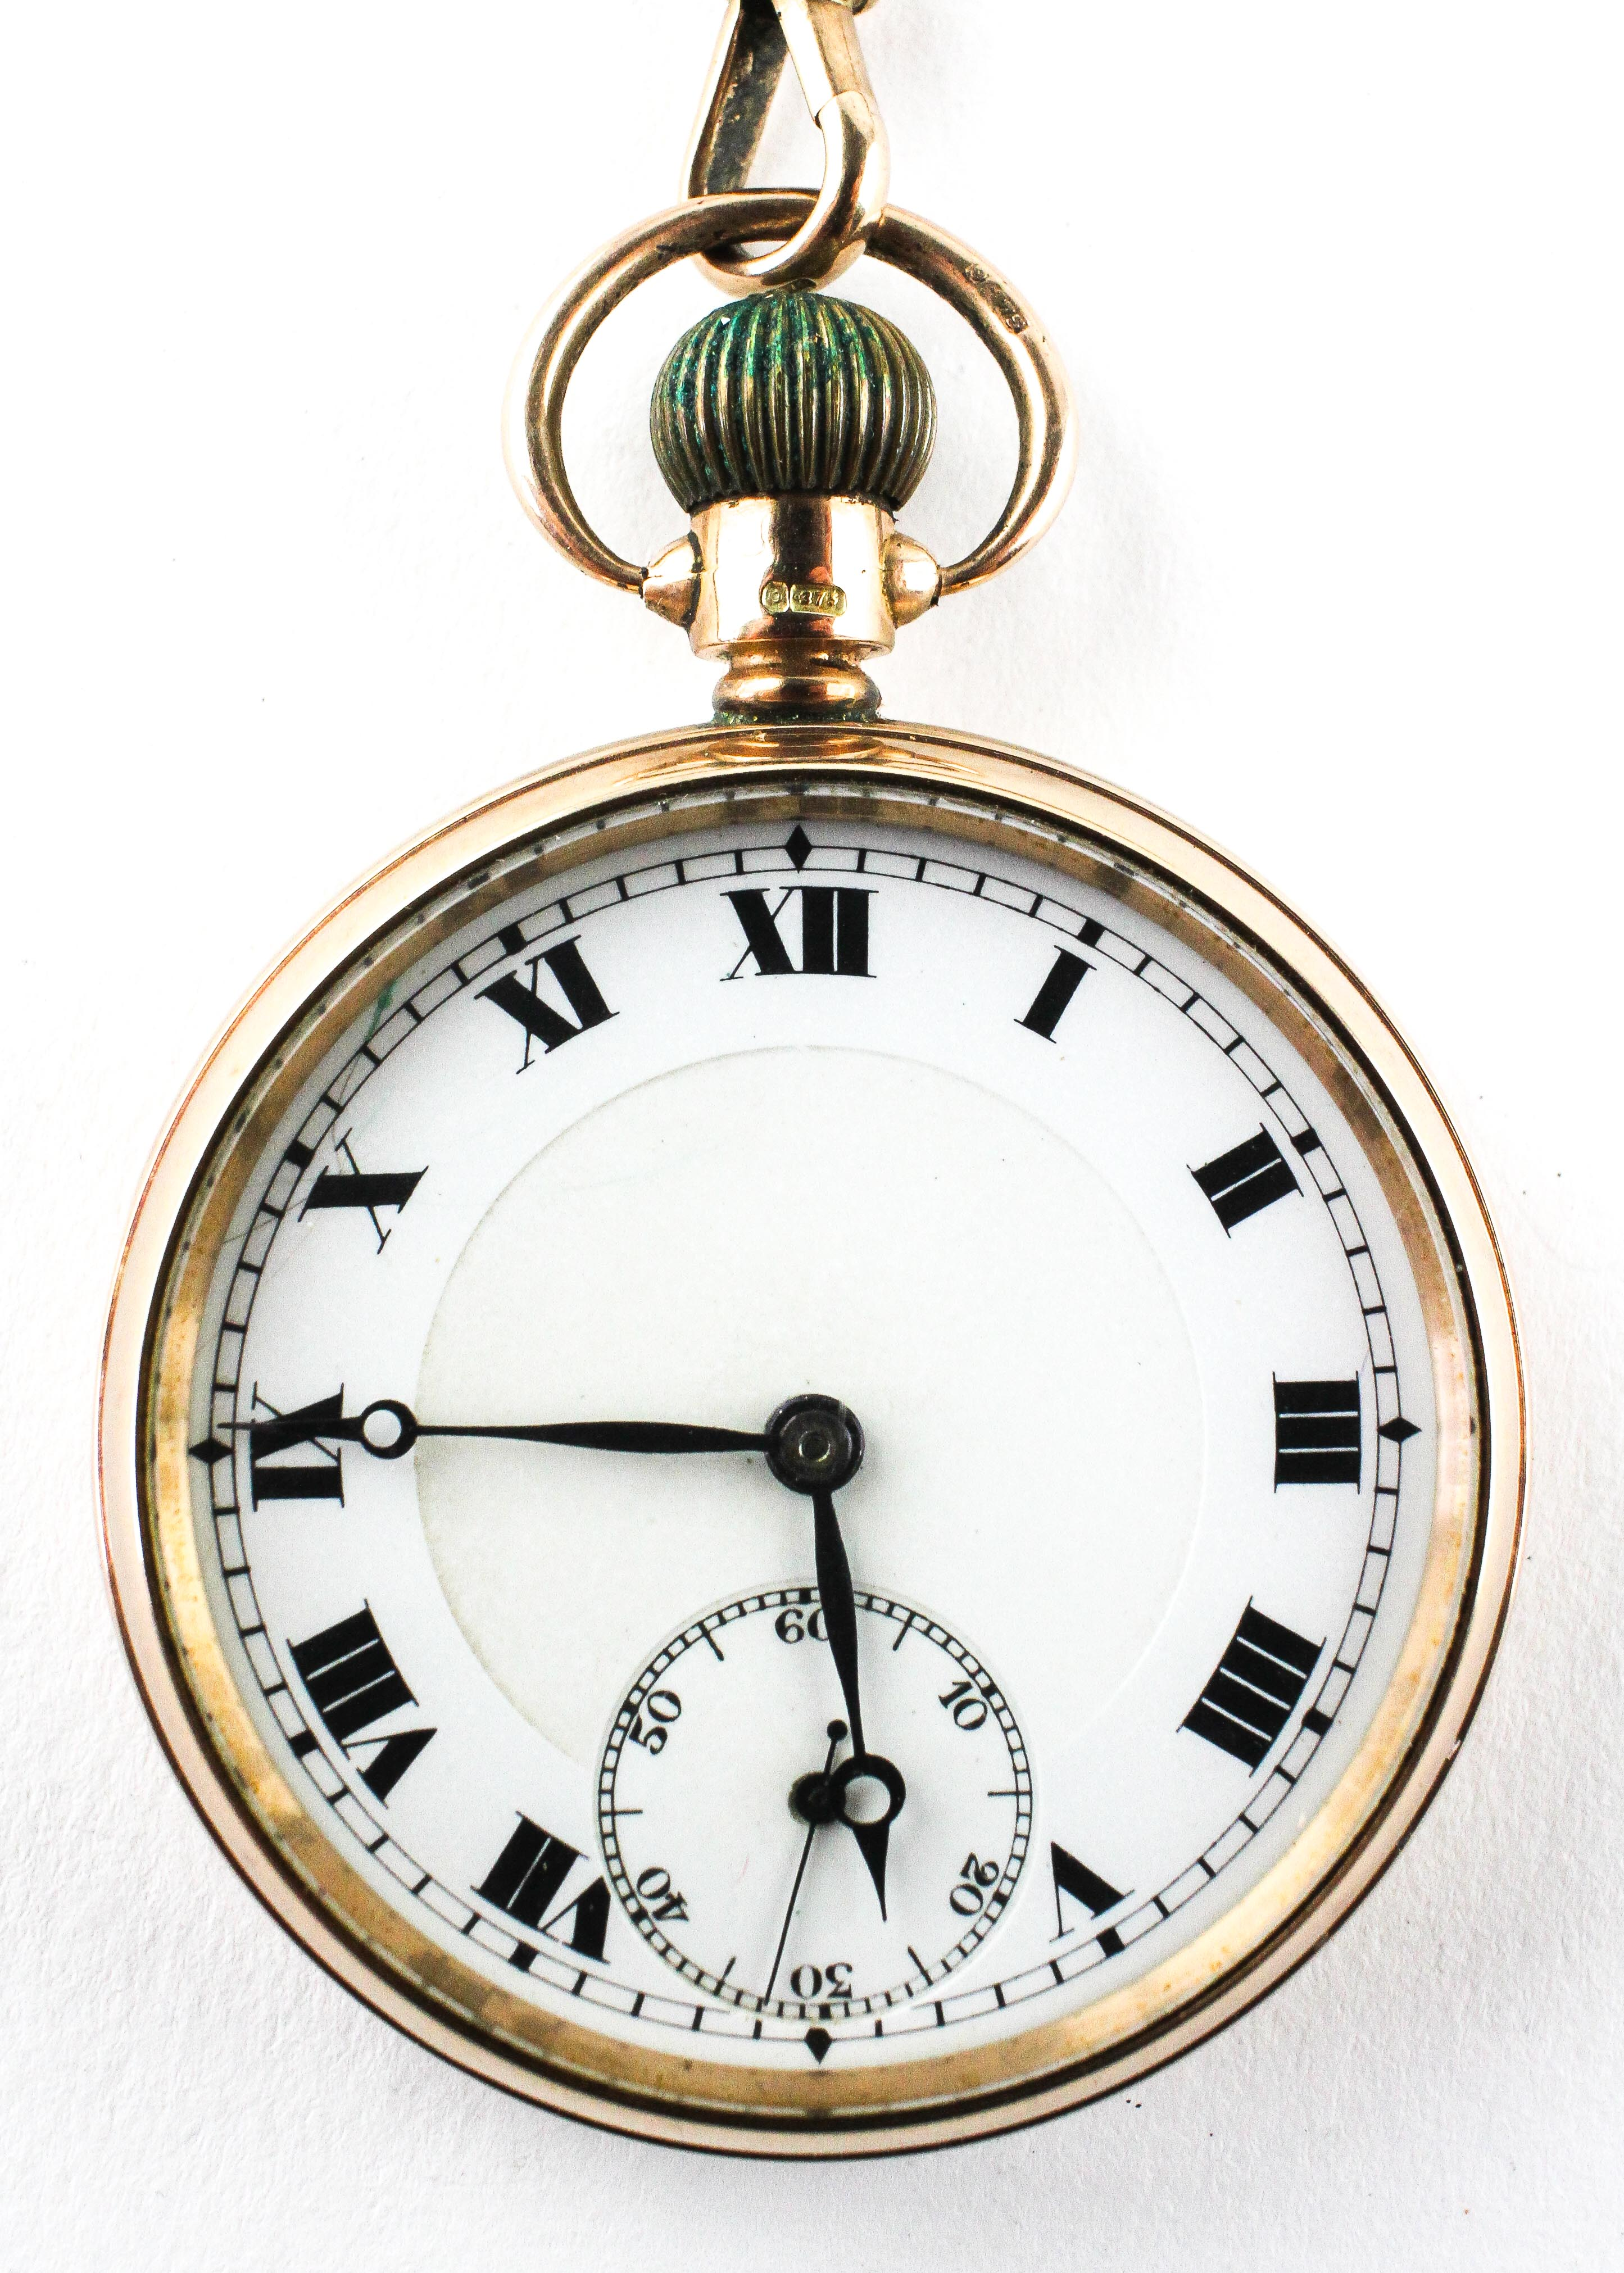 An open face pocket watch. Circular white dial with roman numerals.